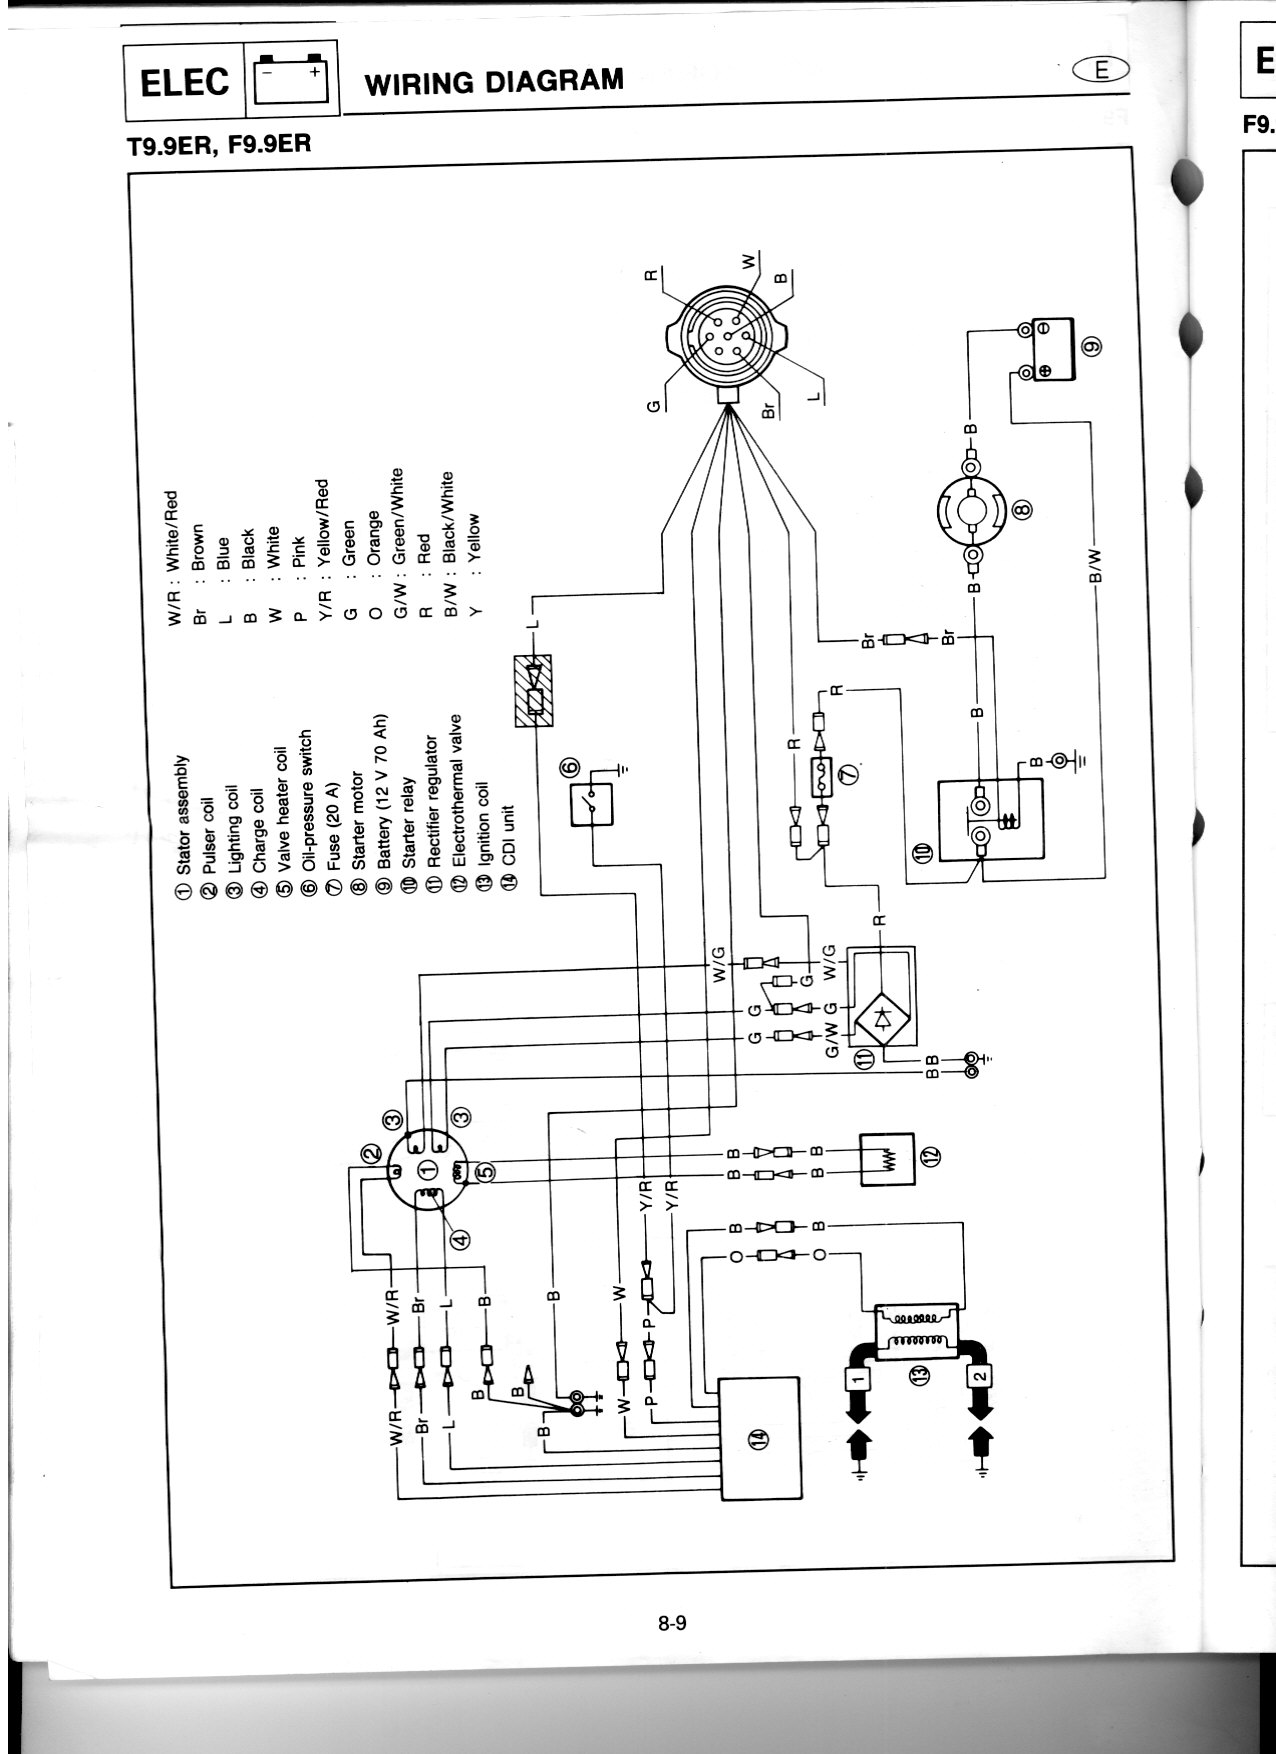 T9 Wiring Diagram Basic Finlandia 9 Electrical Needed Pdq Owners Forum Rh Pdqforum Com Diagrams Symbols